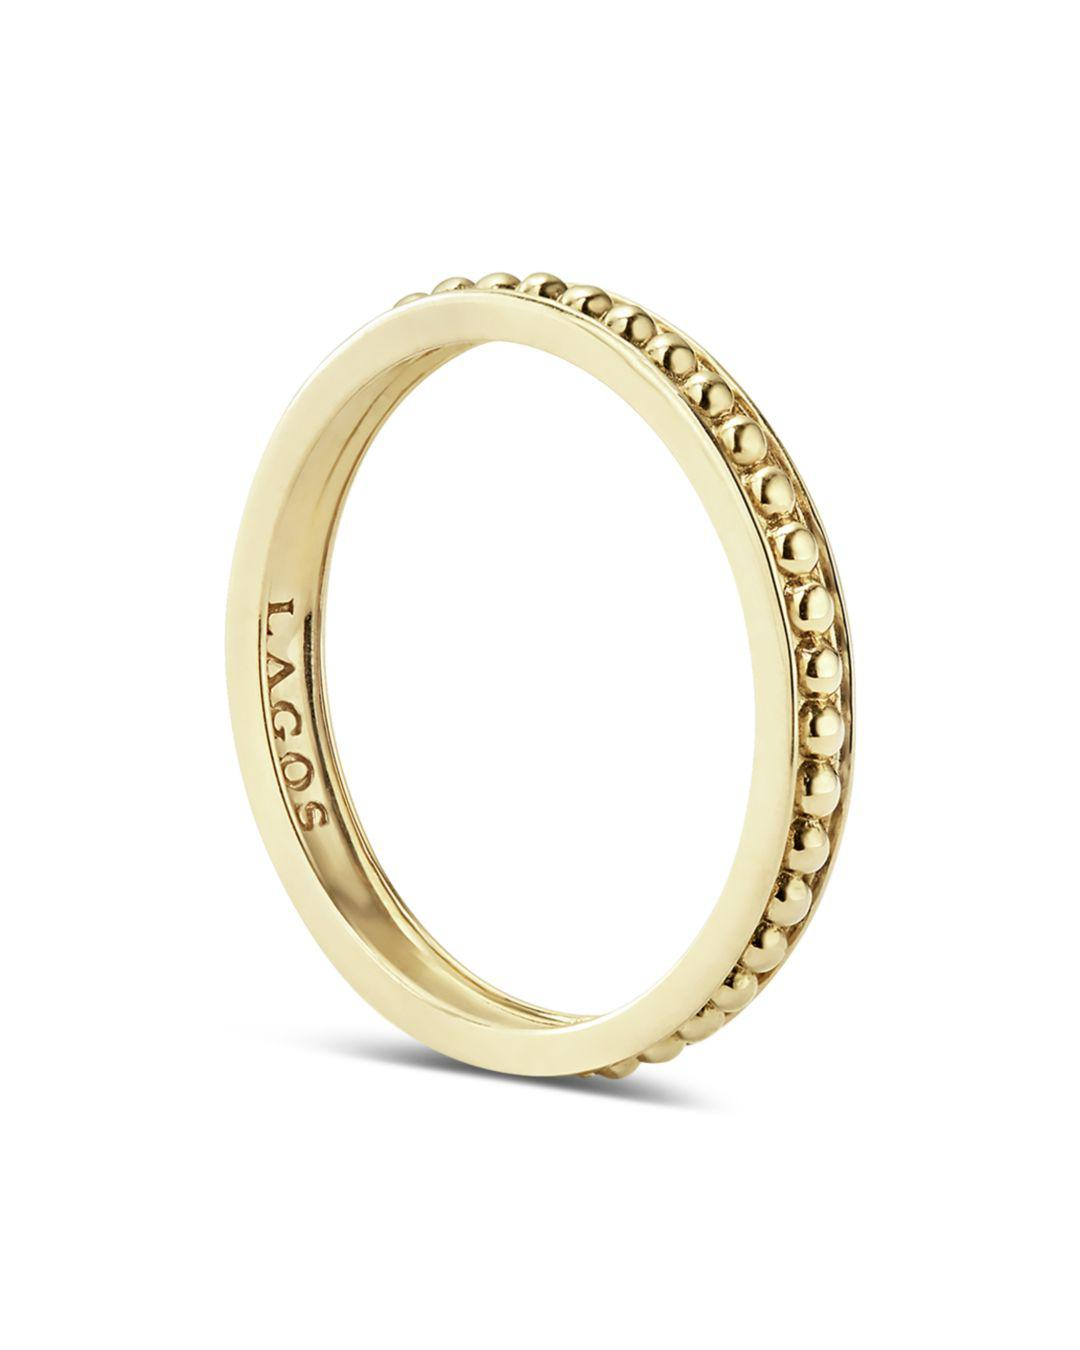 Lagos Caviar Gold Collection 18k Gold Beaded Stacking Ring in Metallic